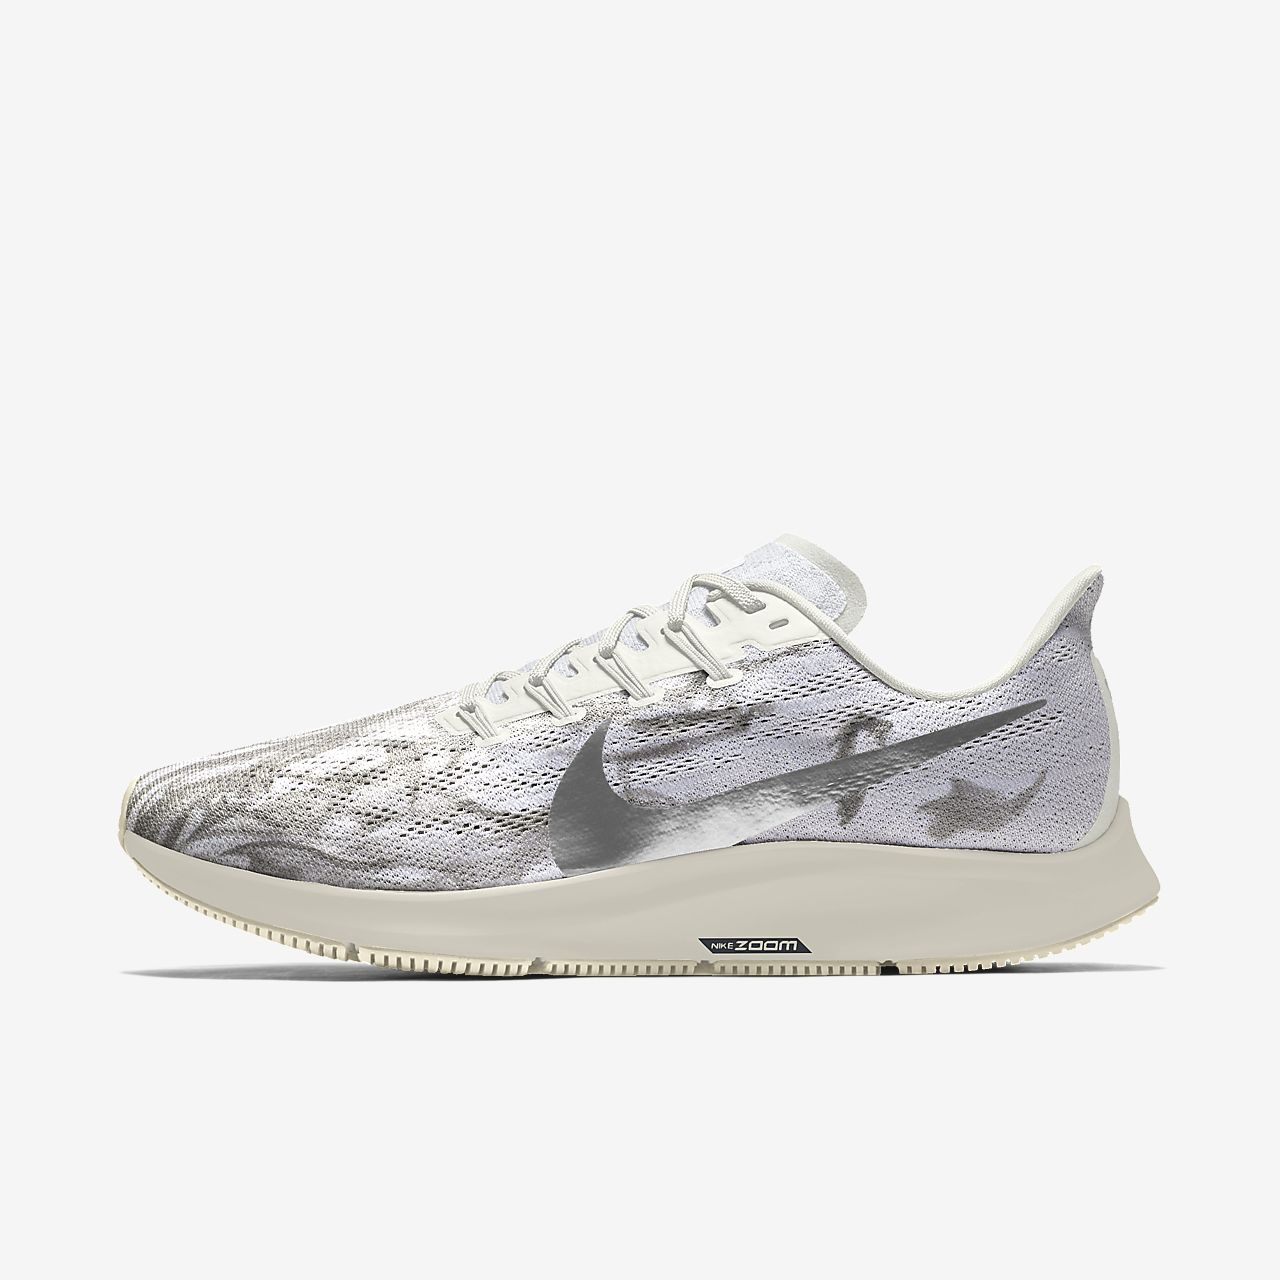 Chaussure de running personnalisable Nike Air Zoom Pegasus 36 By You pour Homme